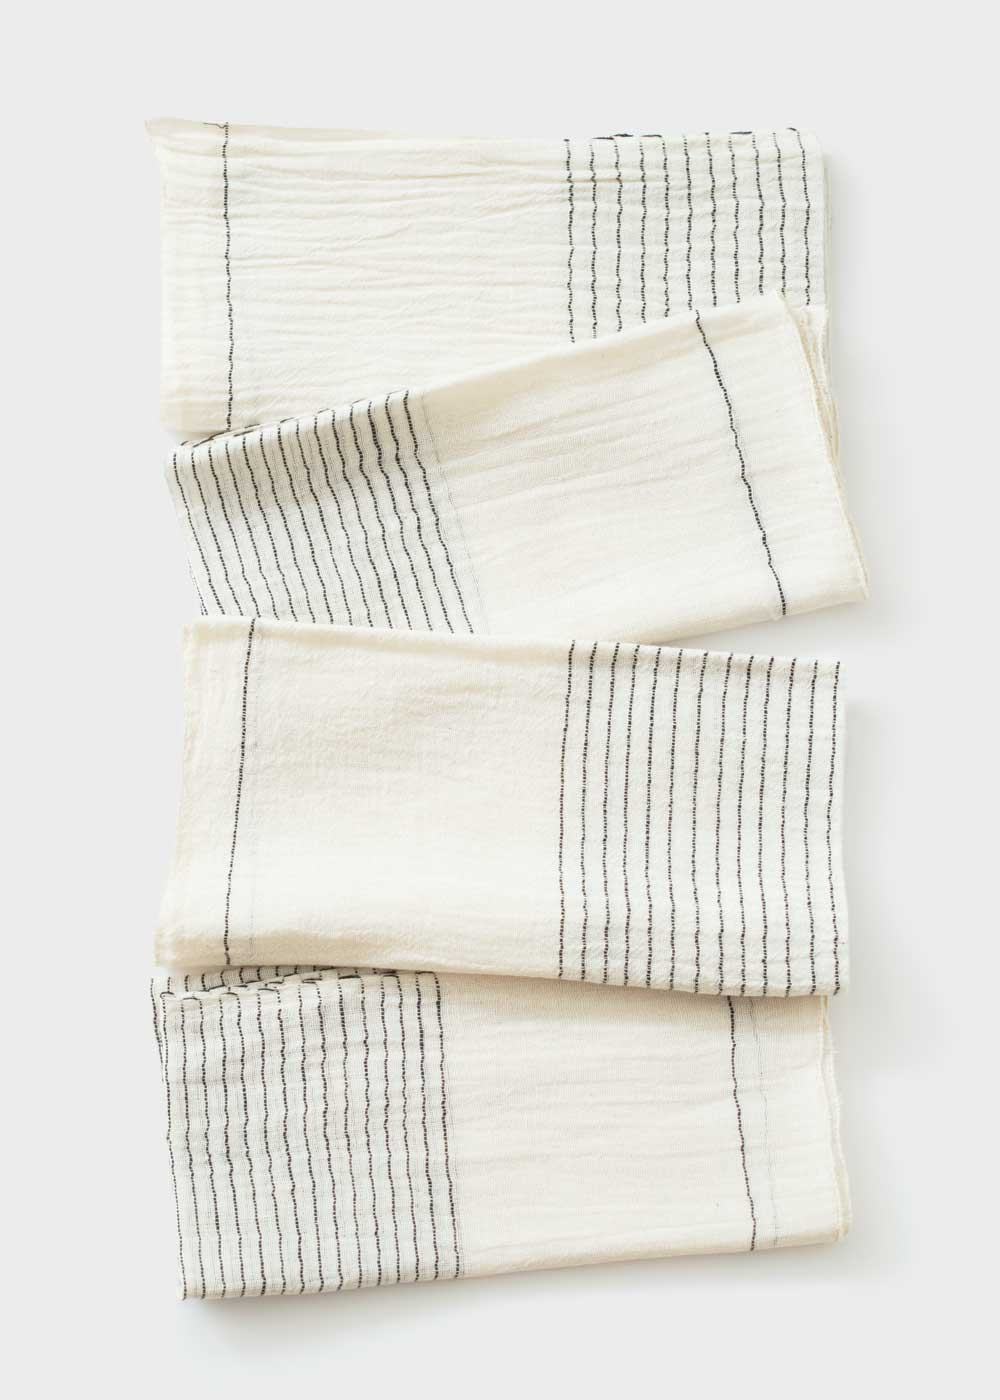 Roha Cotton Napkins